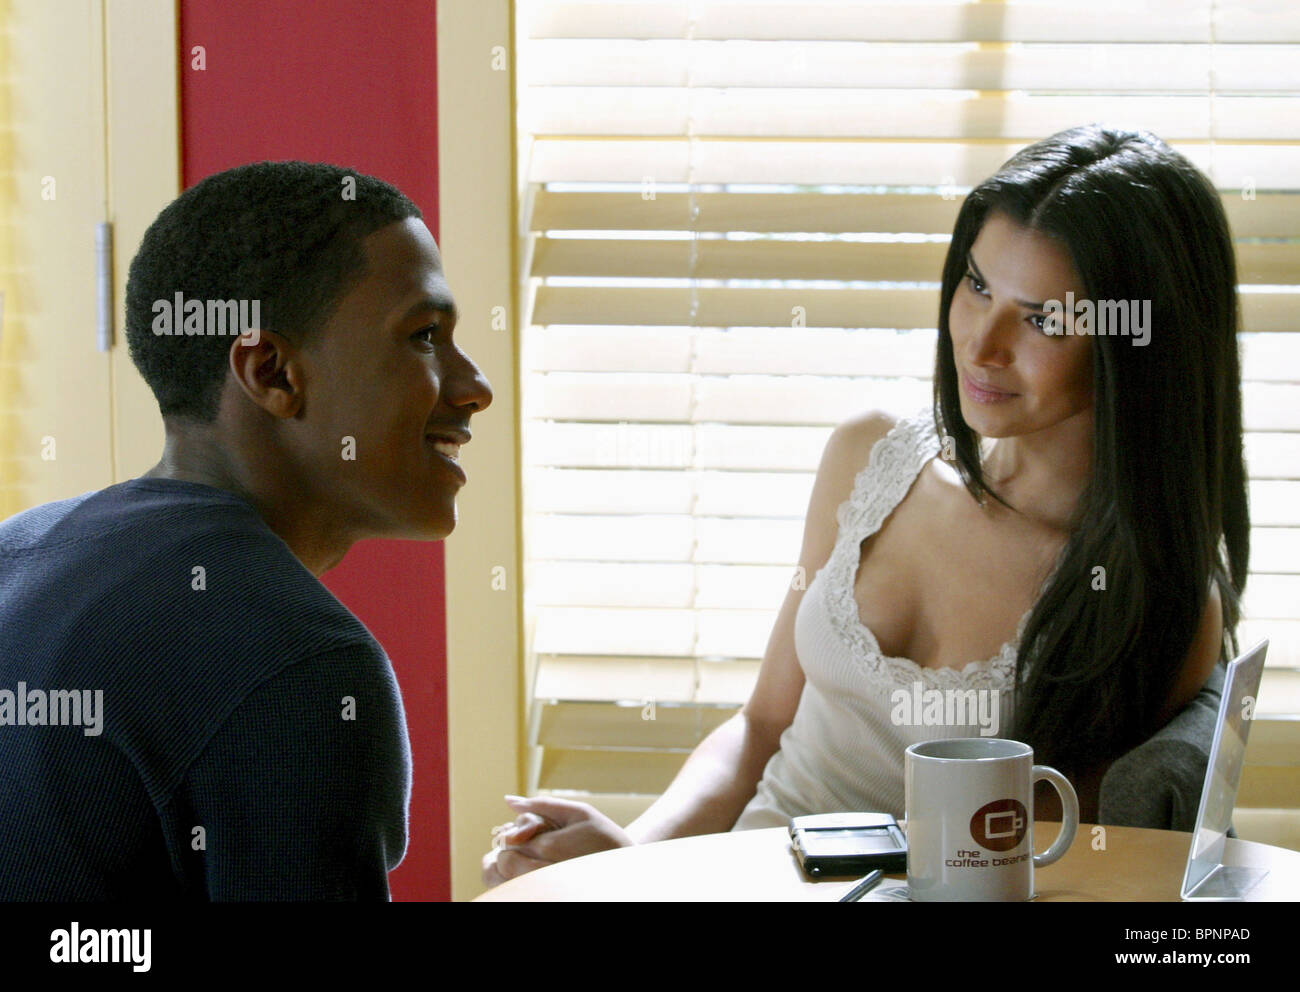 NICK CANNON & ROSELYN SANCHEZ THE UNDERCLASSMAN; THE UNDERCLASS MAN (2005) - Stock Image